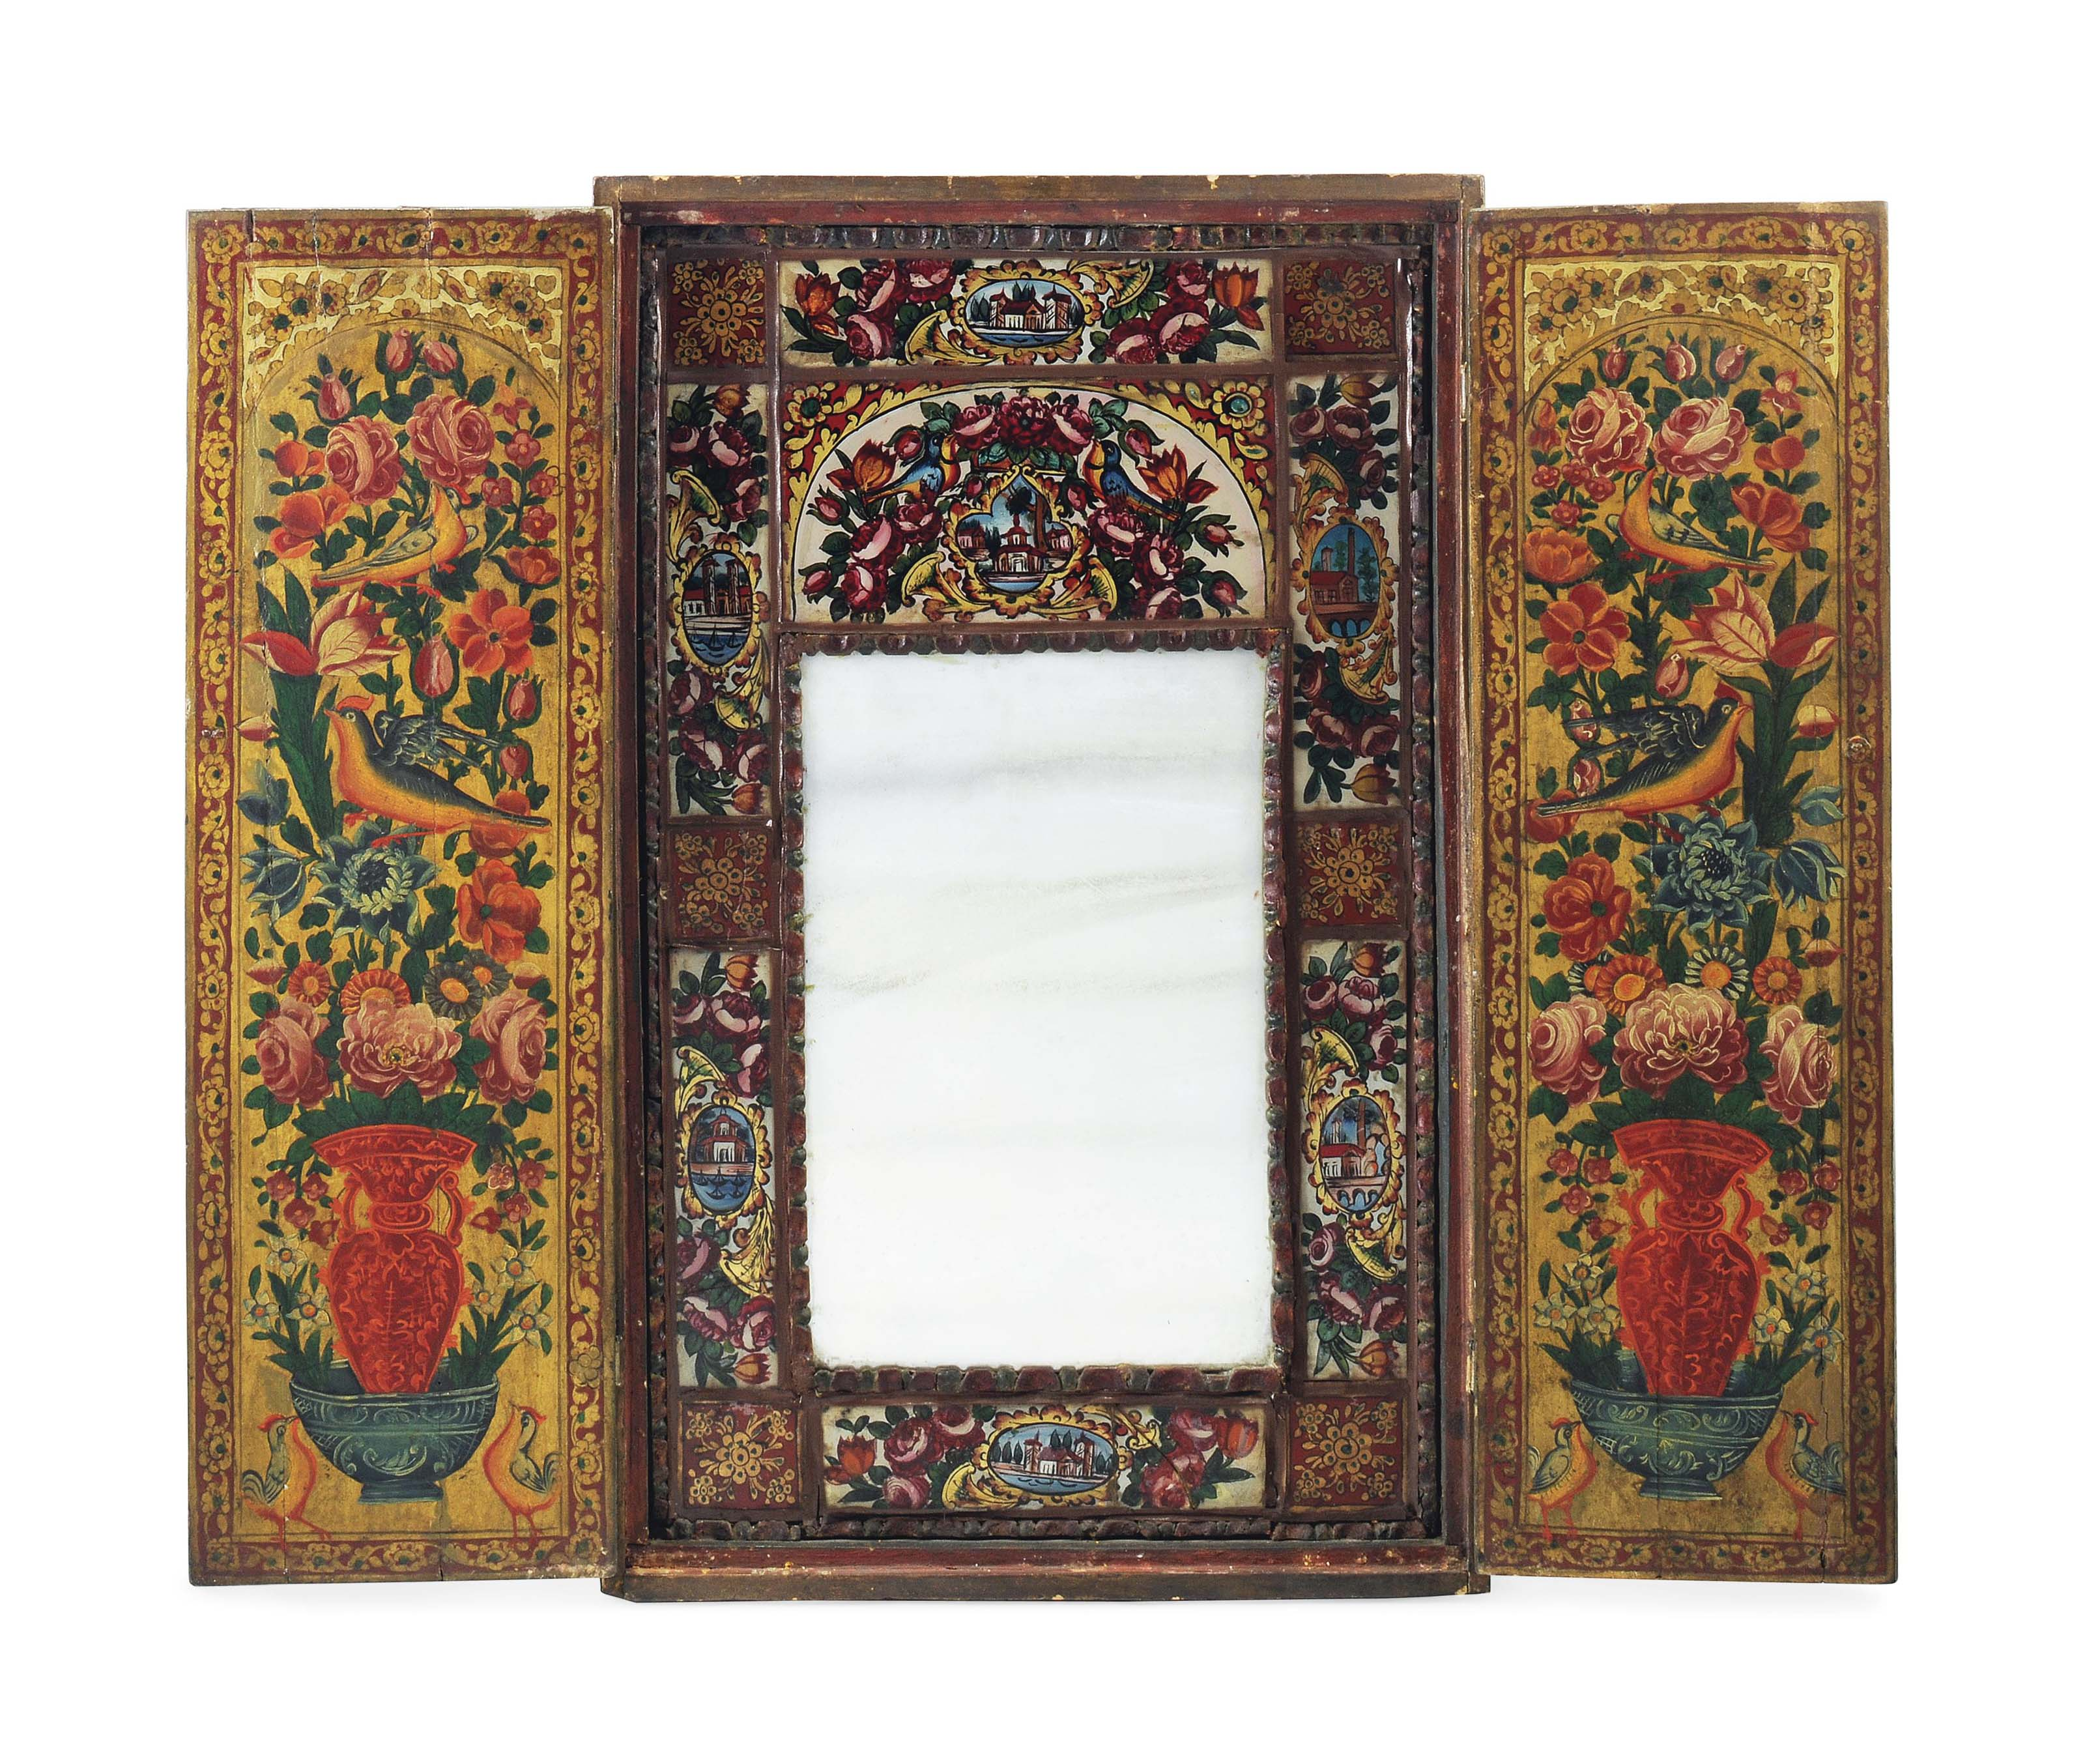 A QAJAR POLYCHROME PAINTED WOODEN MIRROR